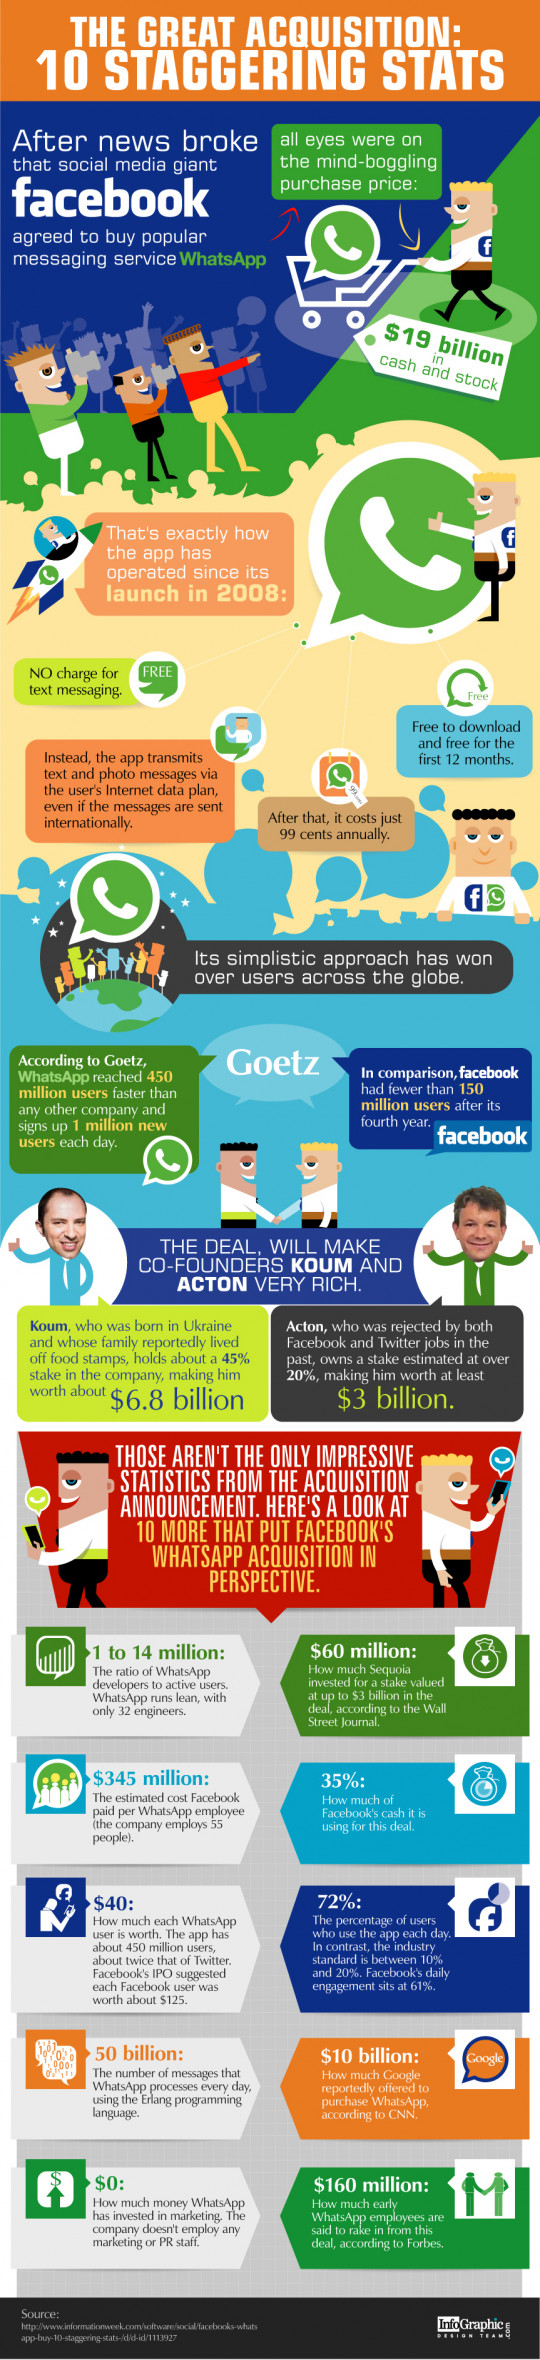 The Great Acquisition: 10 Staggering Stats